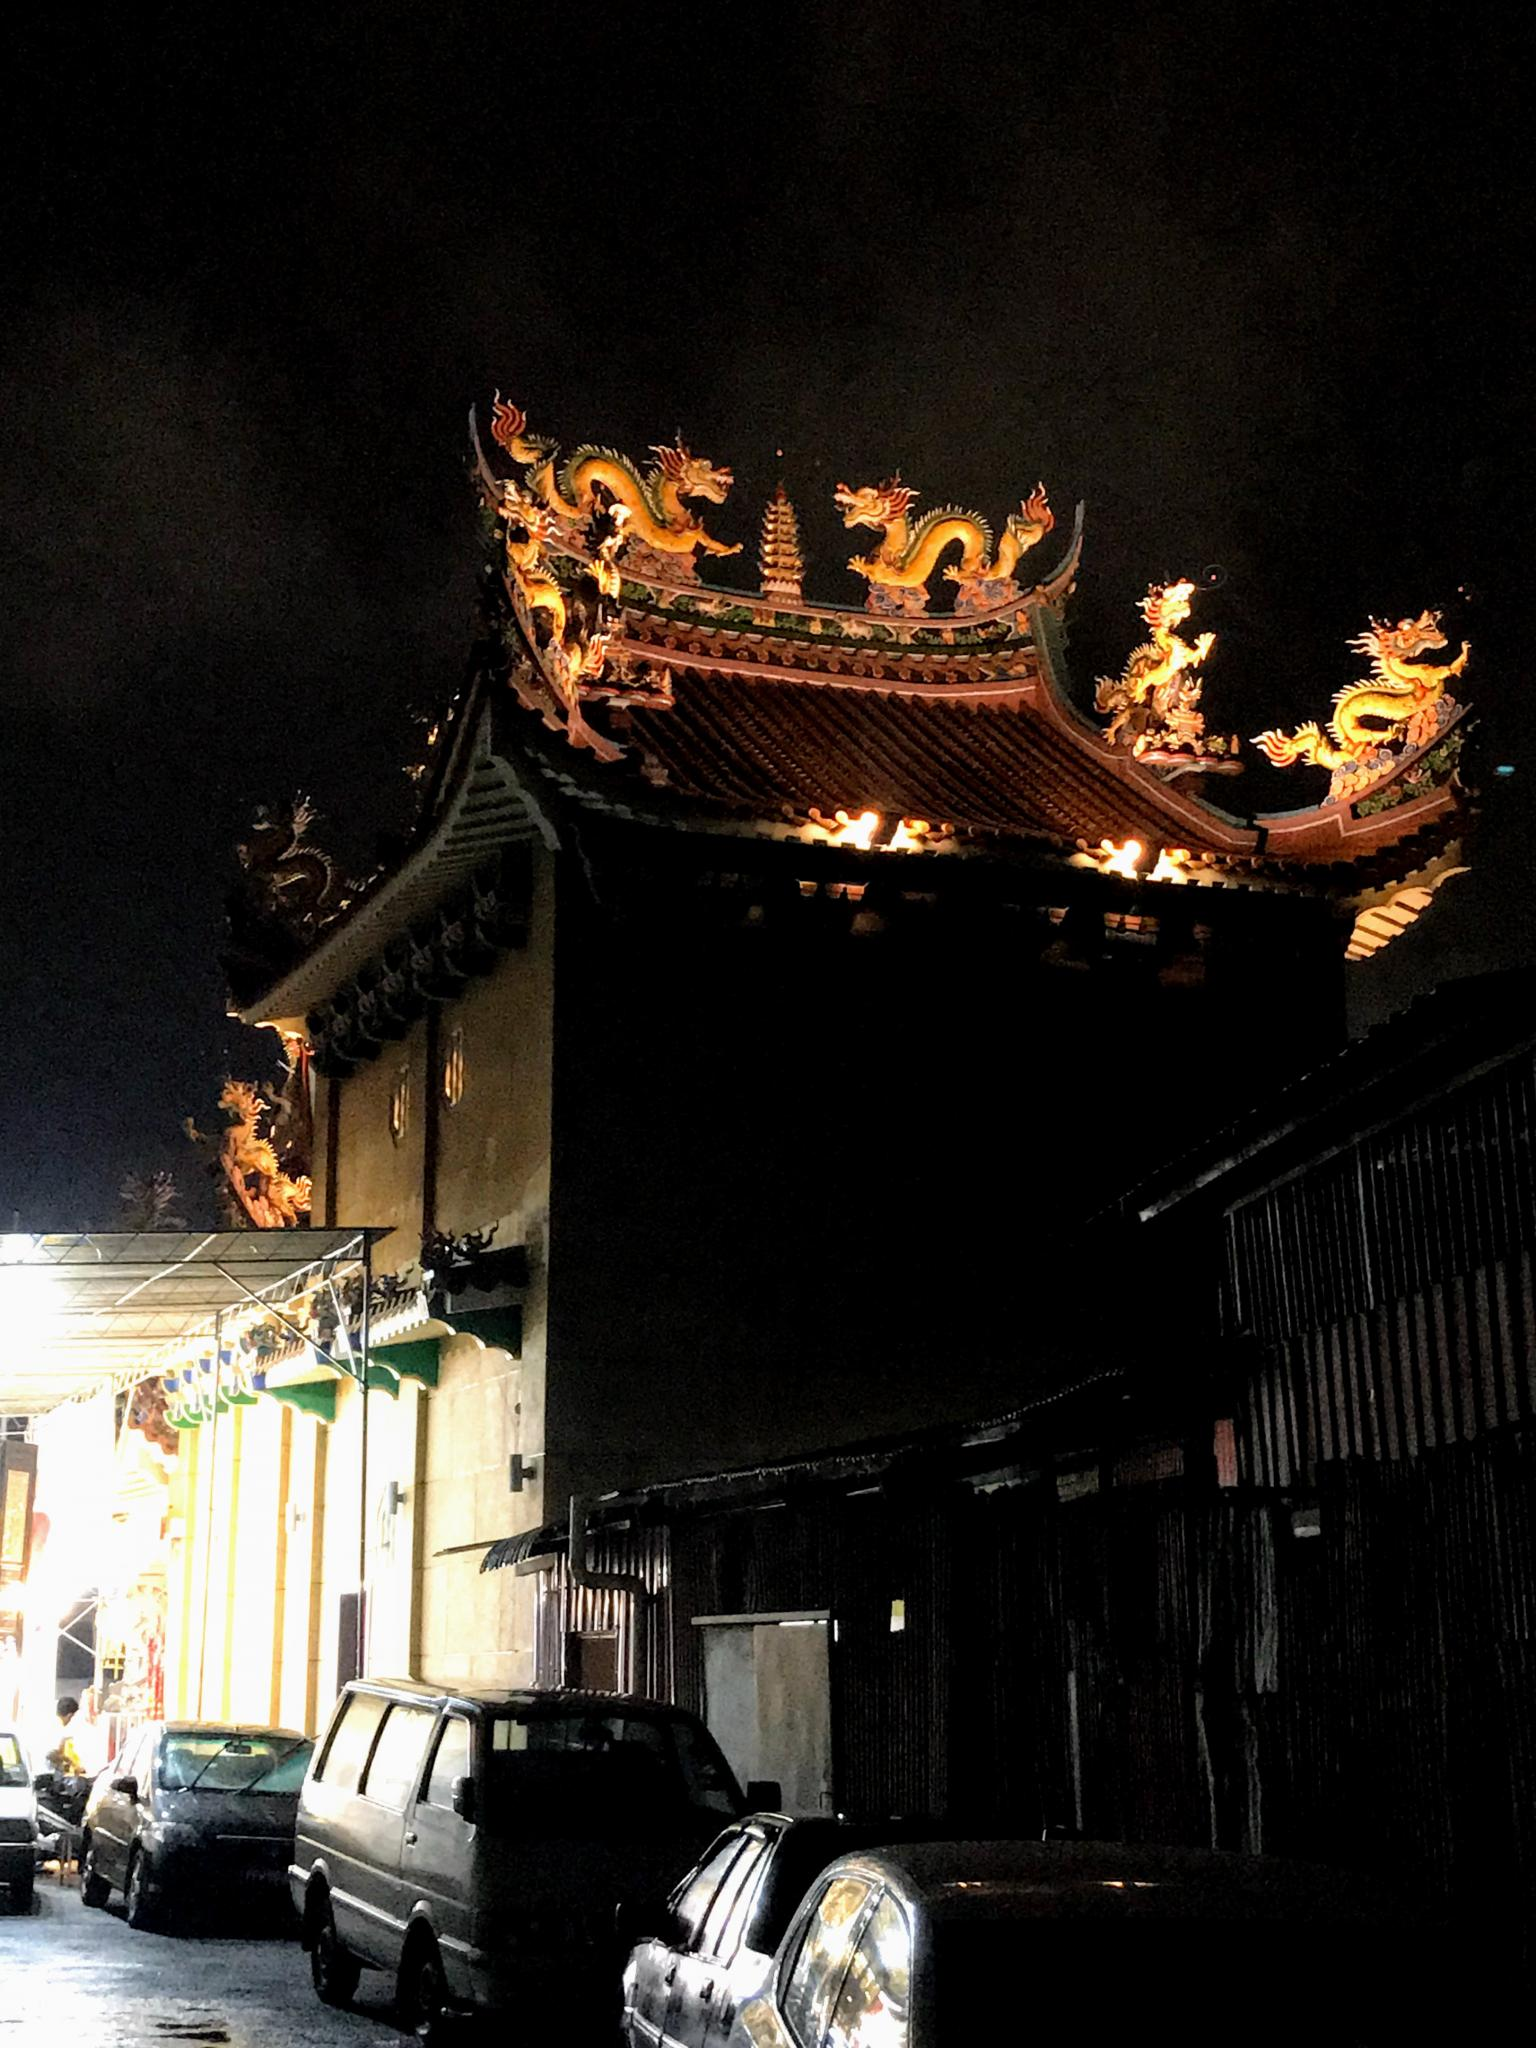 Post a photo a week, of anything/anywhere-penang-chinese-temple-night-jpg